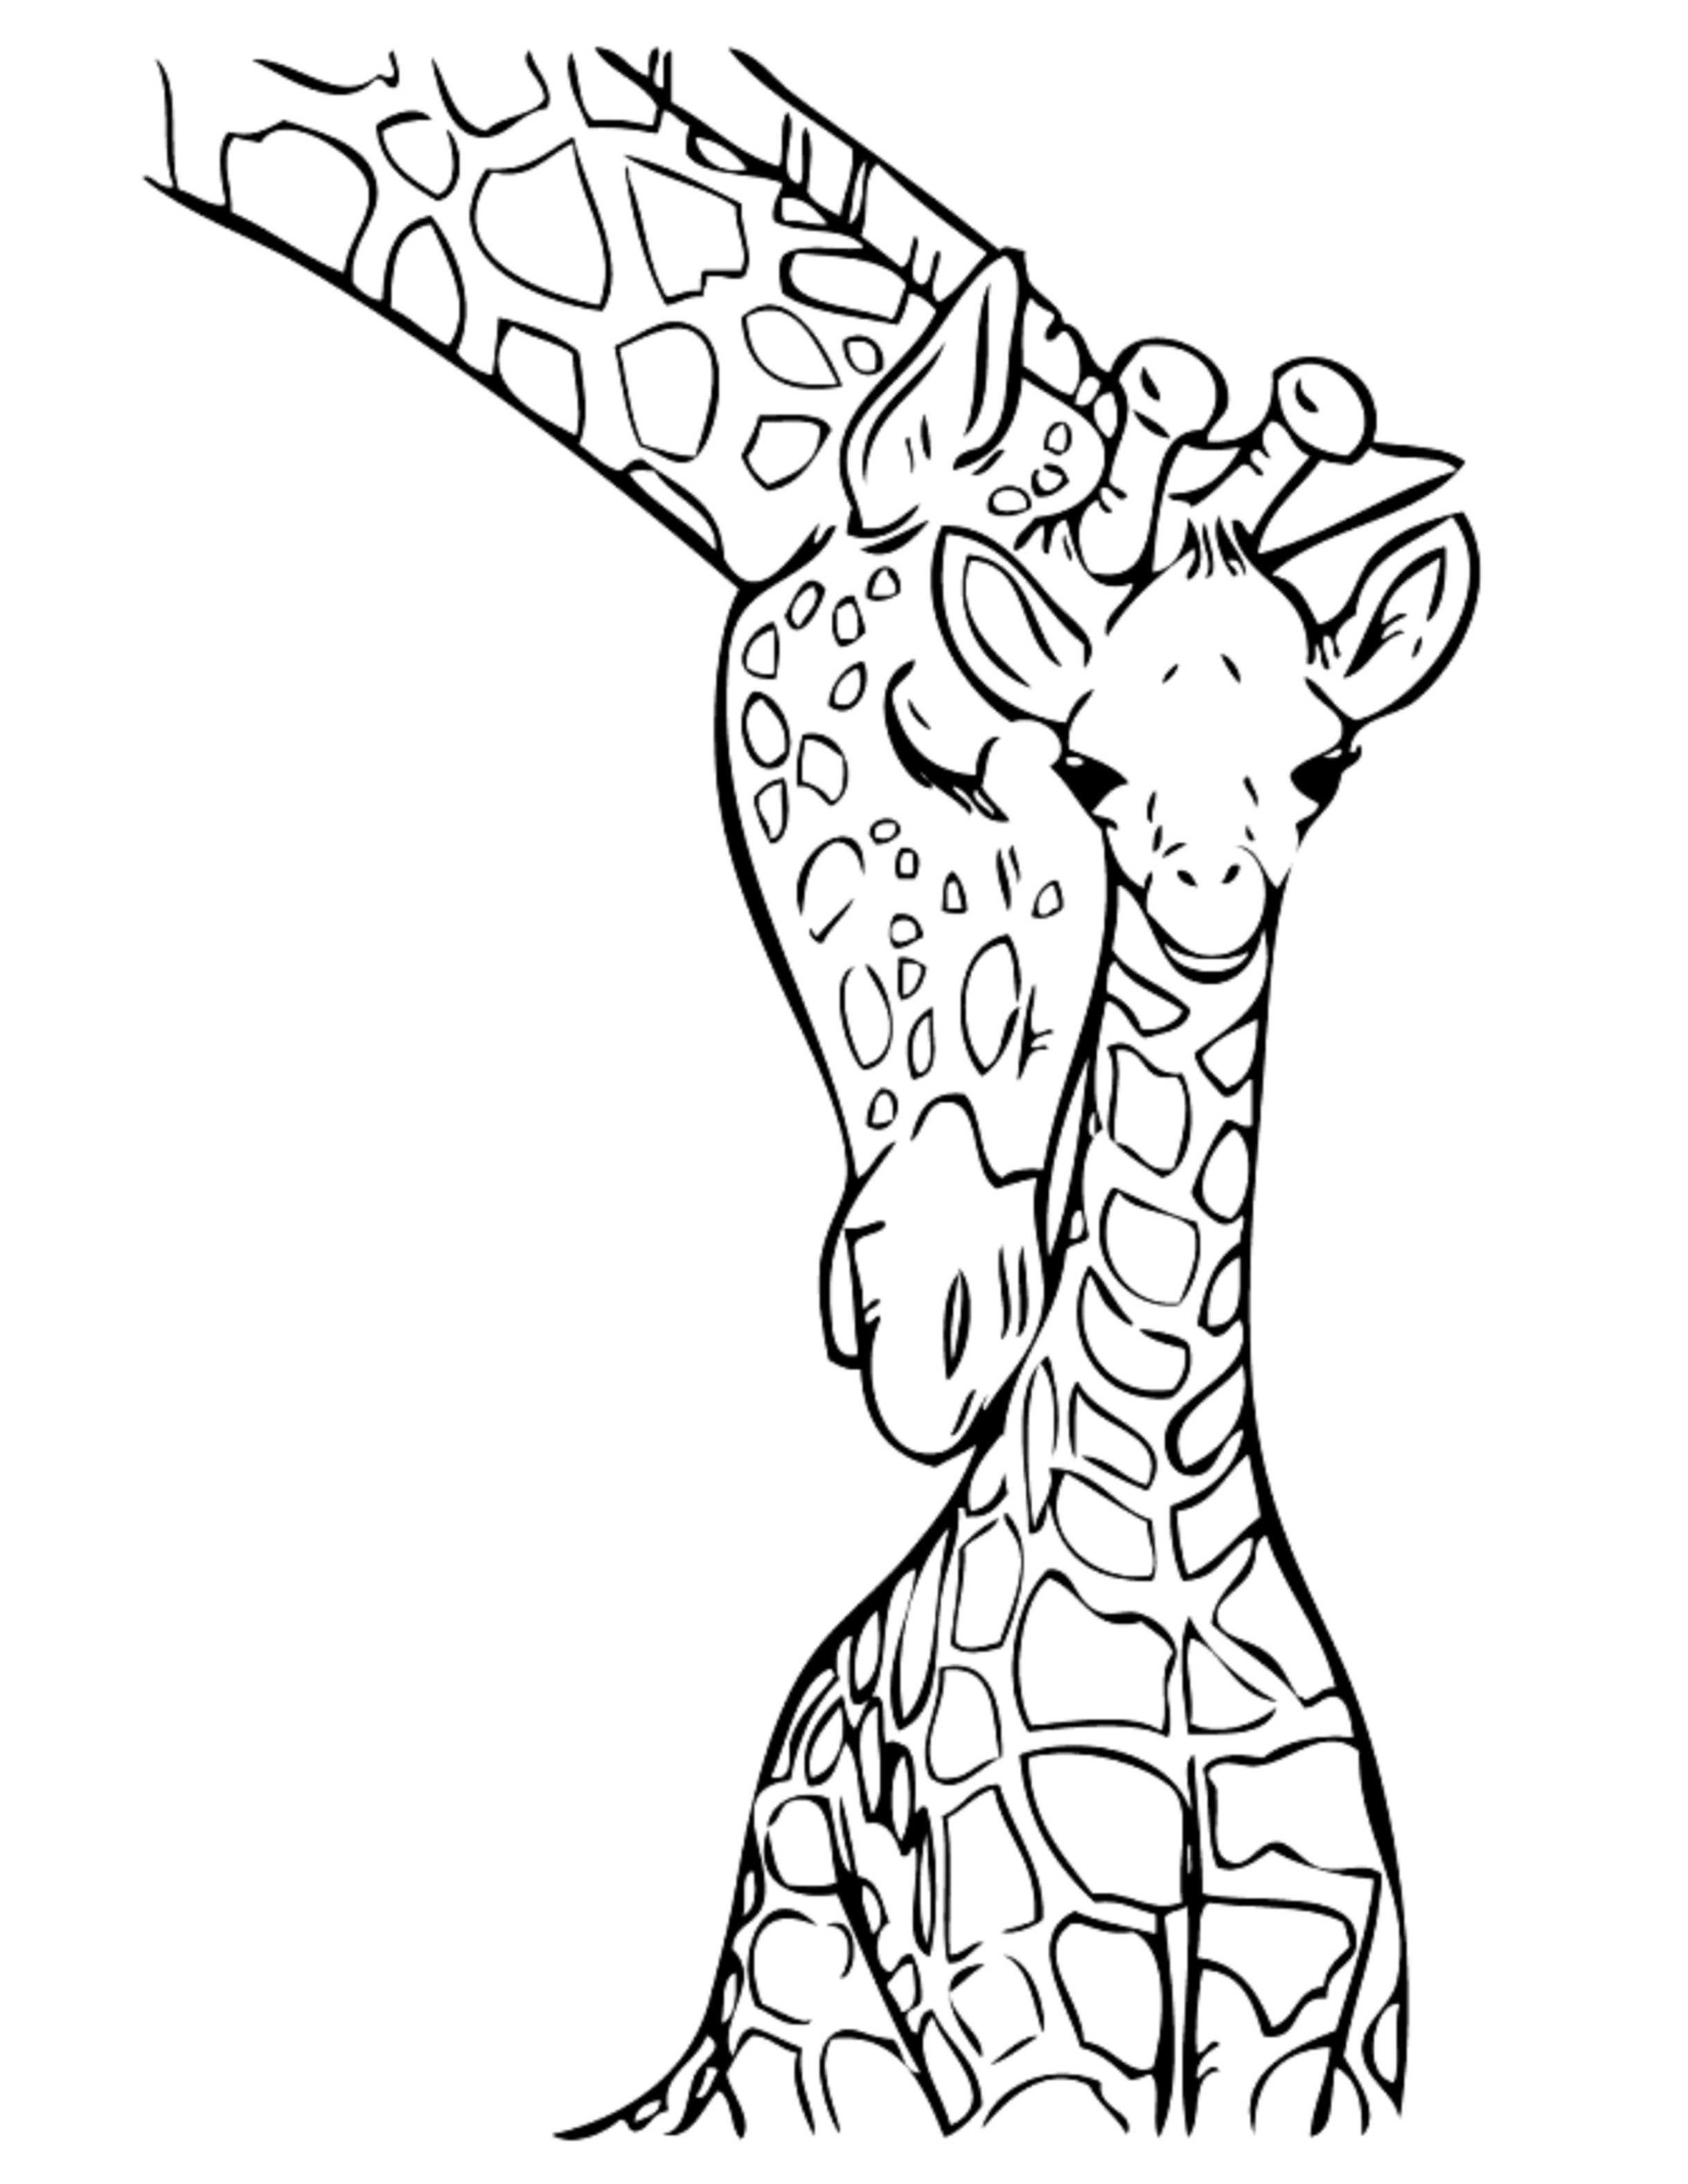 Coloring Pages Giraffe  Print & Download Giraffe Coloring Pages for Kids to Have Fun